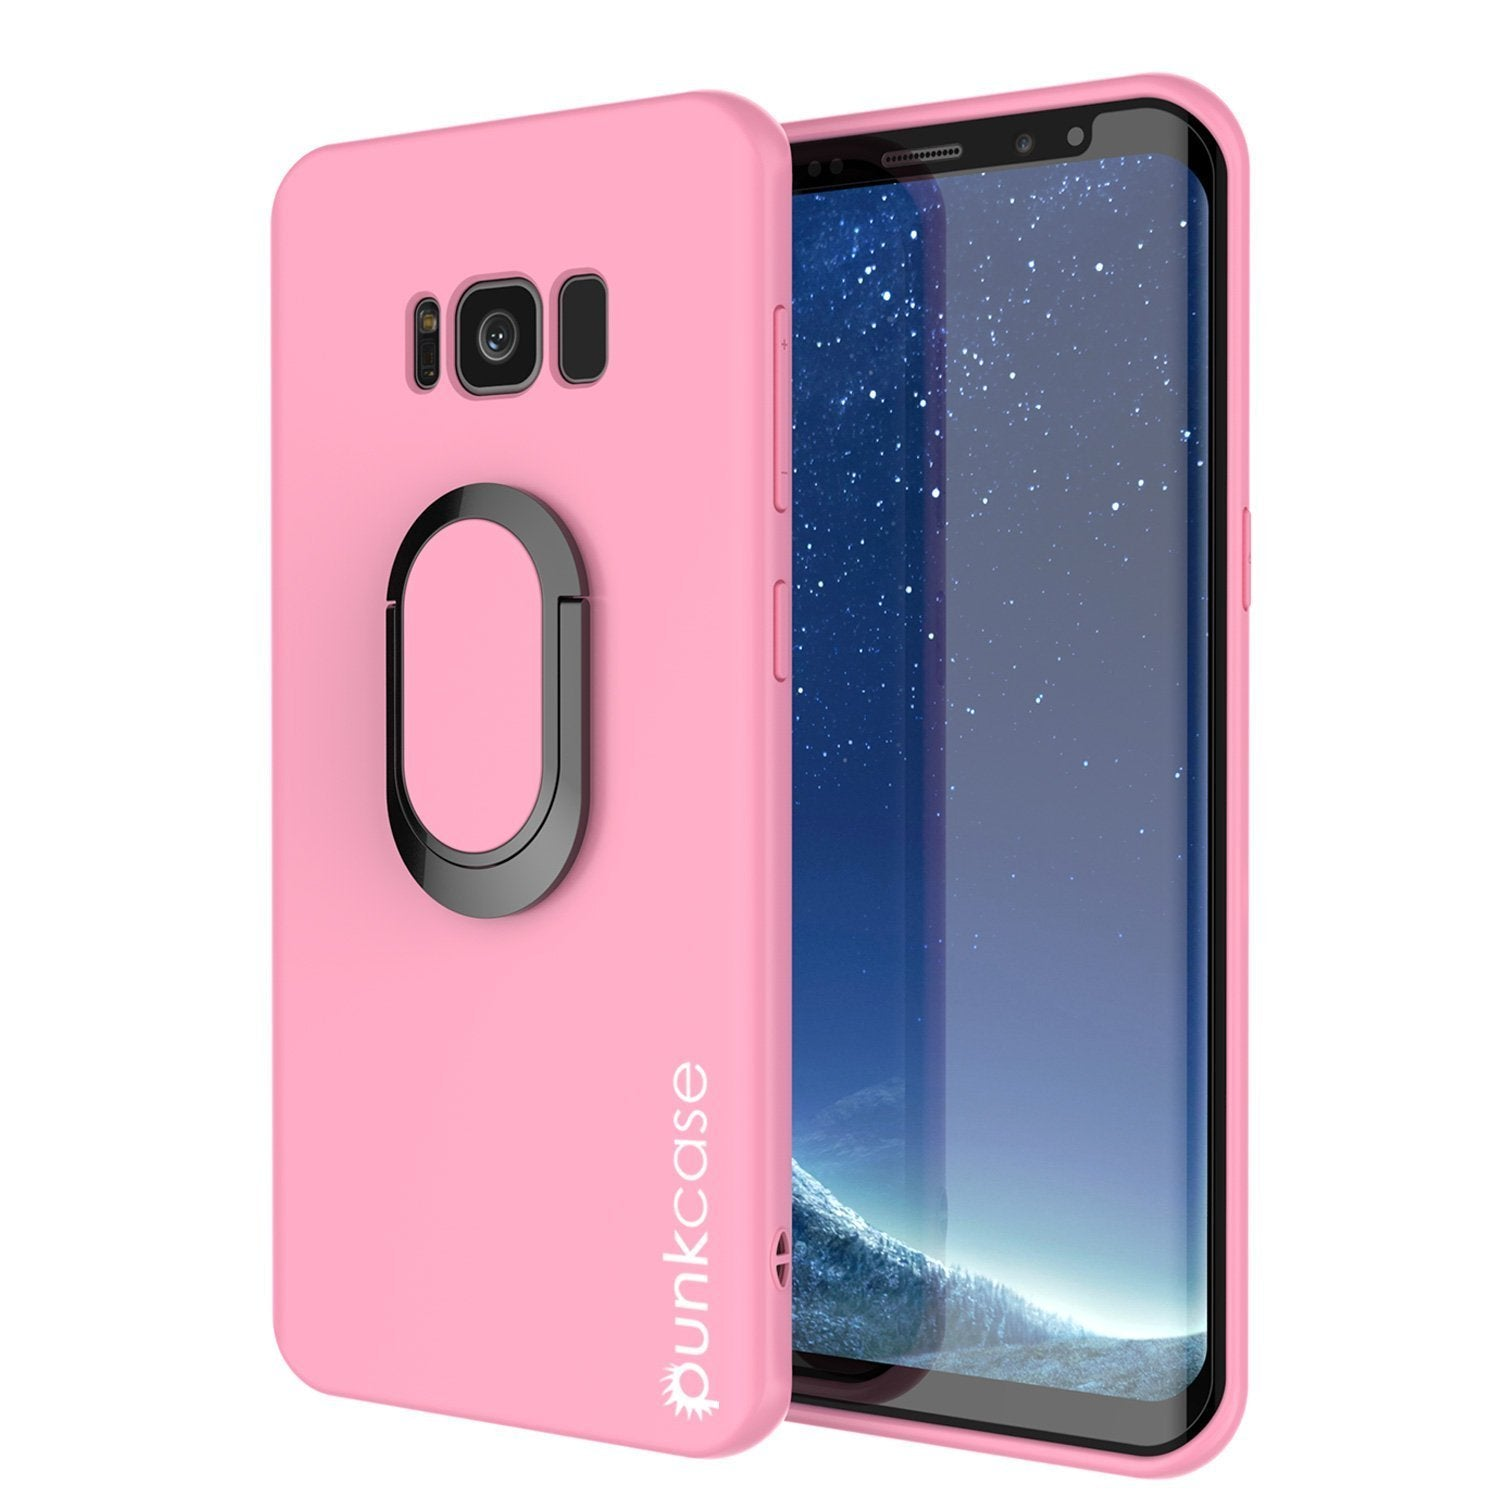 Galaxy S8 PLUS, Punkcase Magnetix Screen Protector Slim Case [Pink]